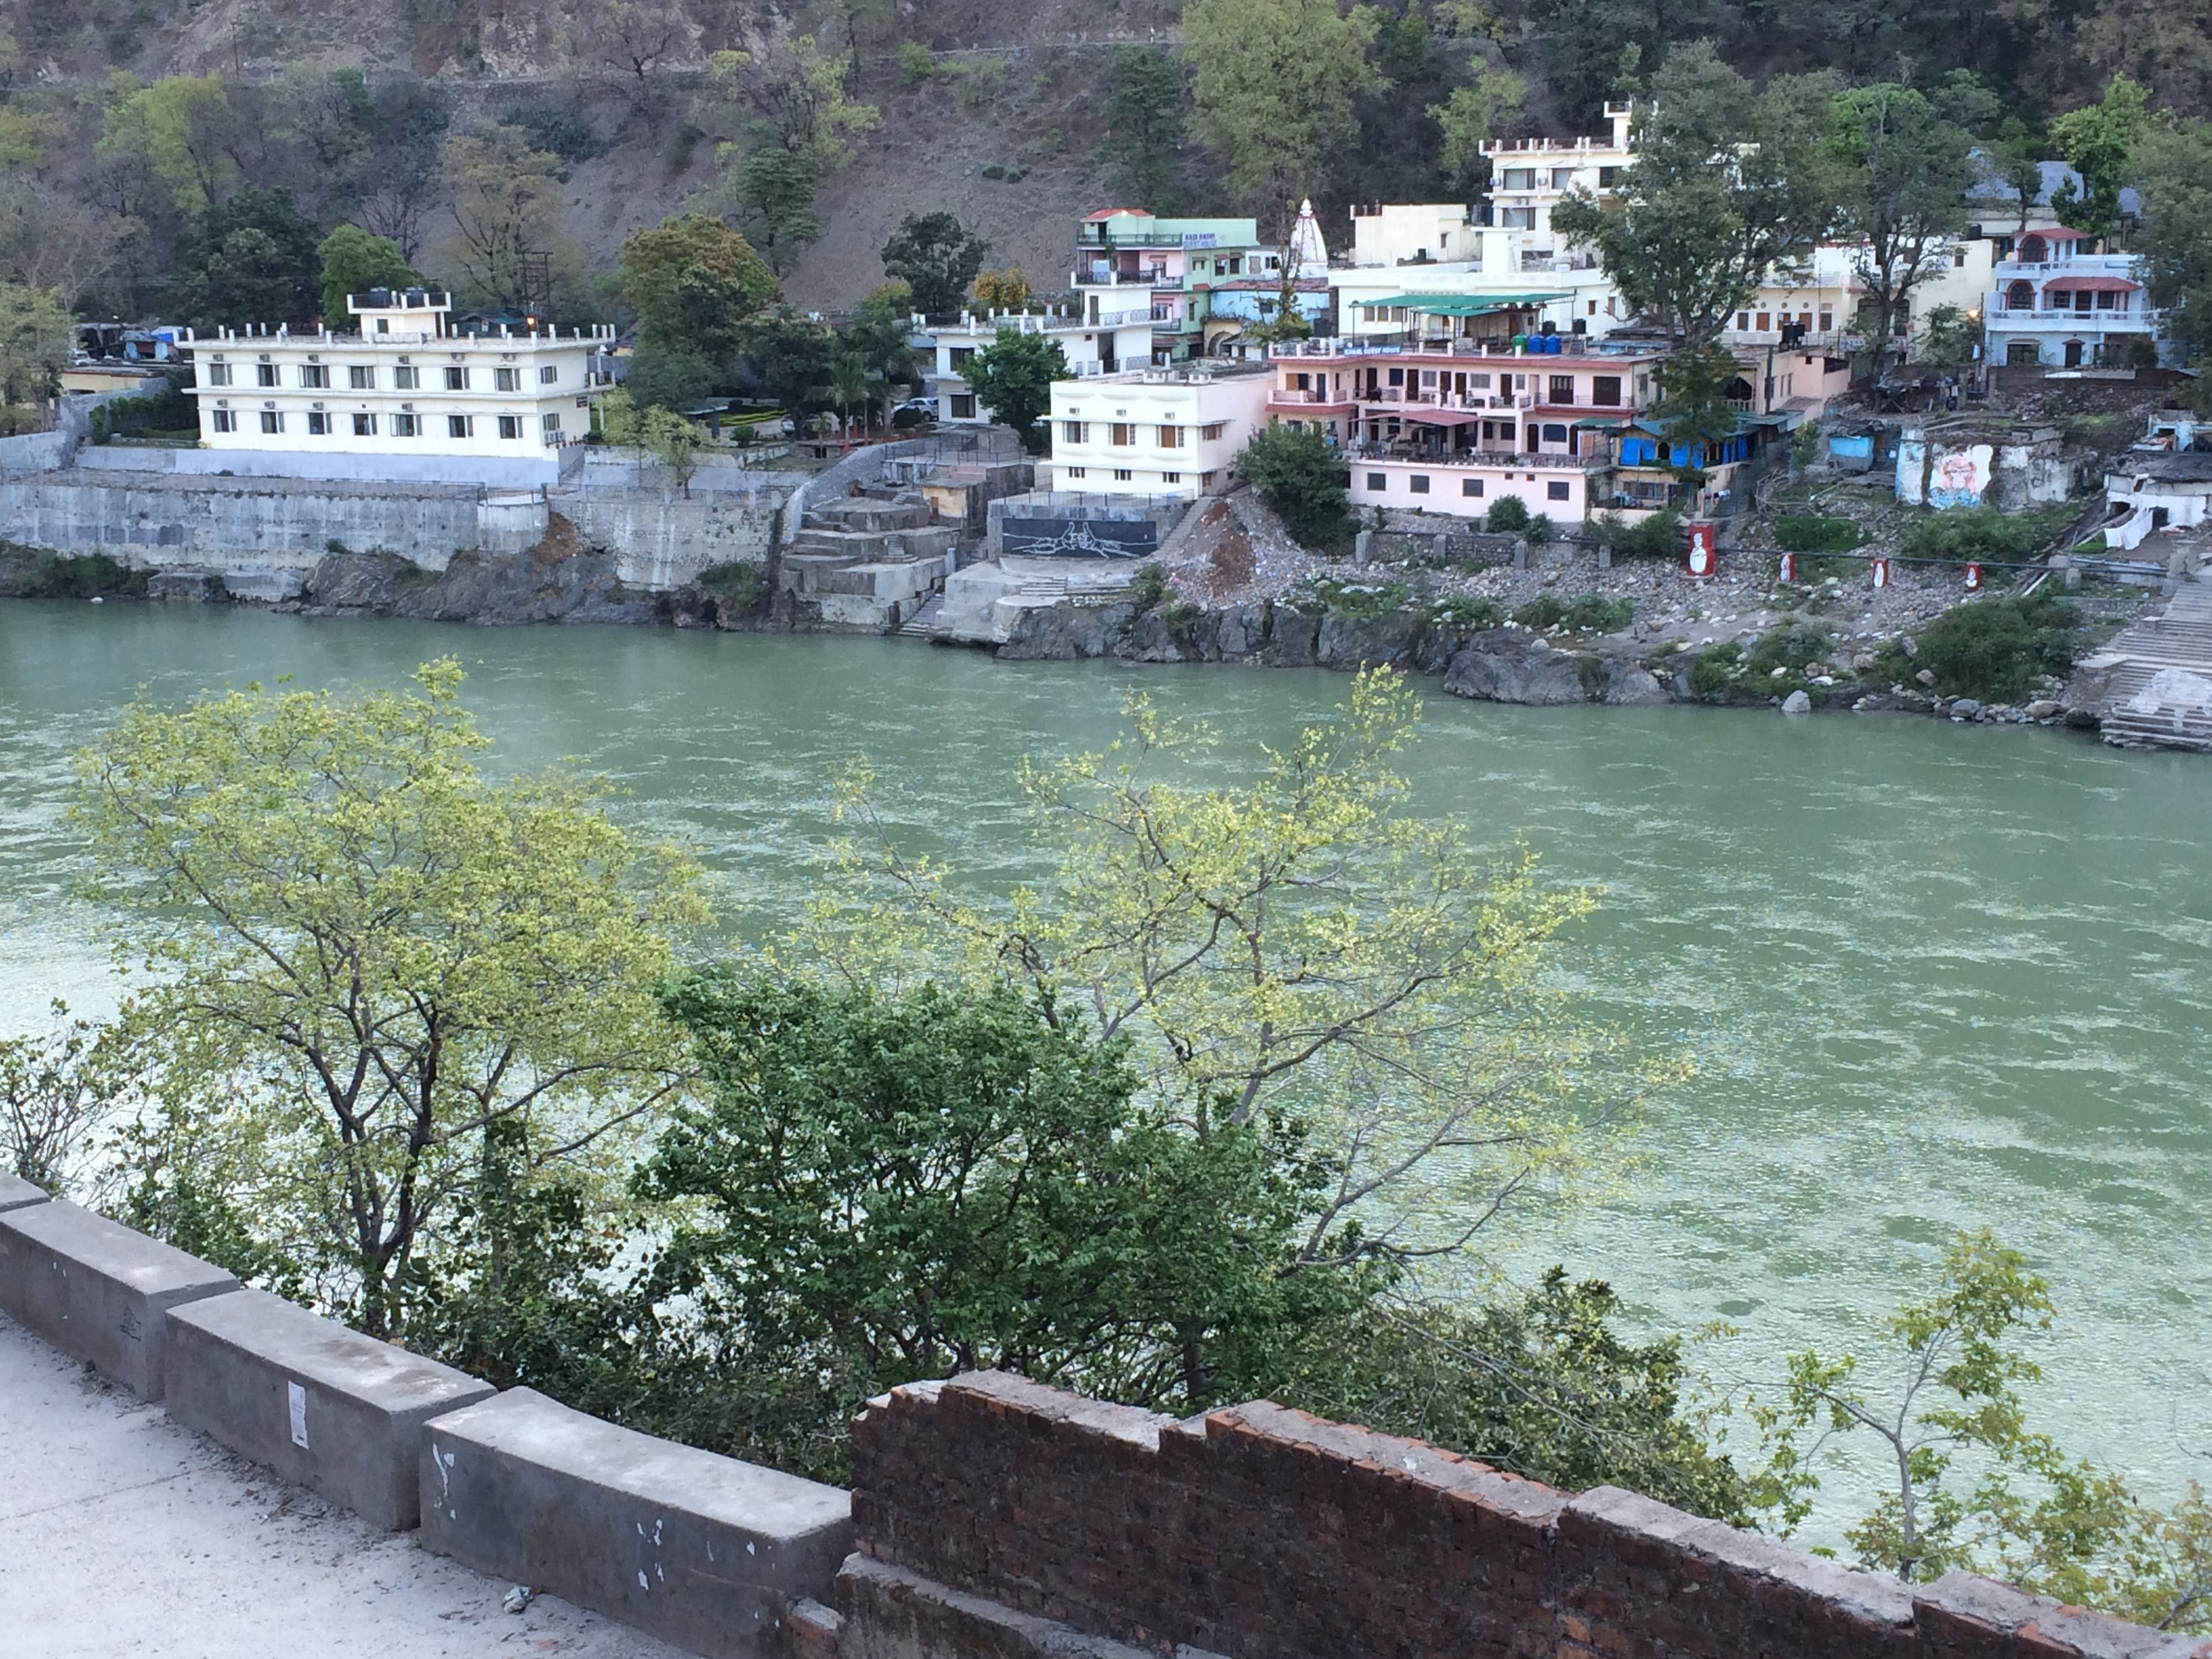 Springtime on the Ganges